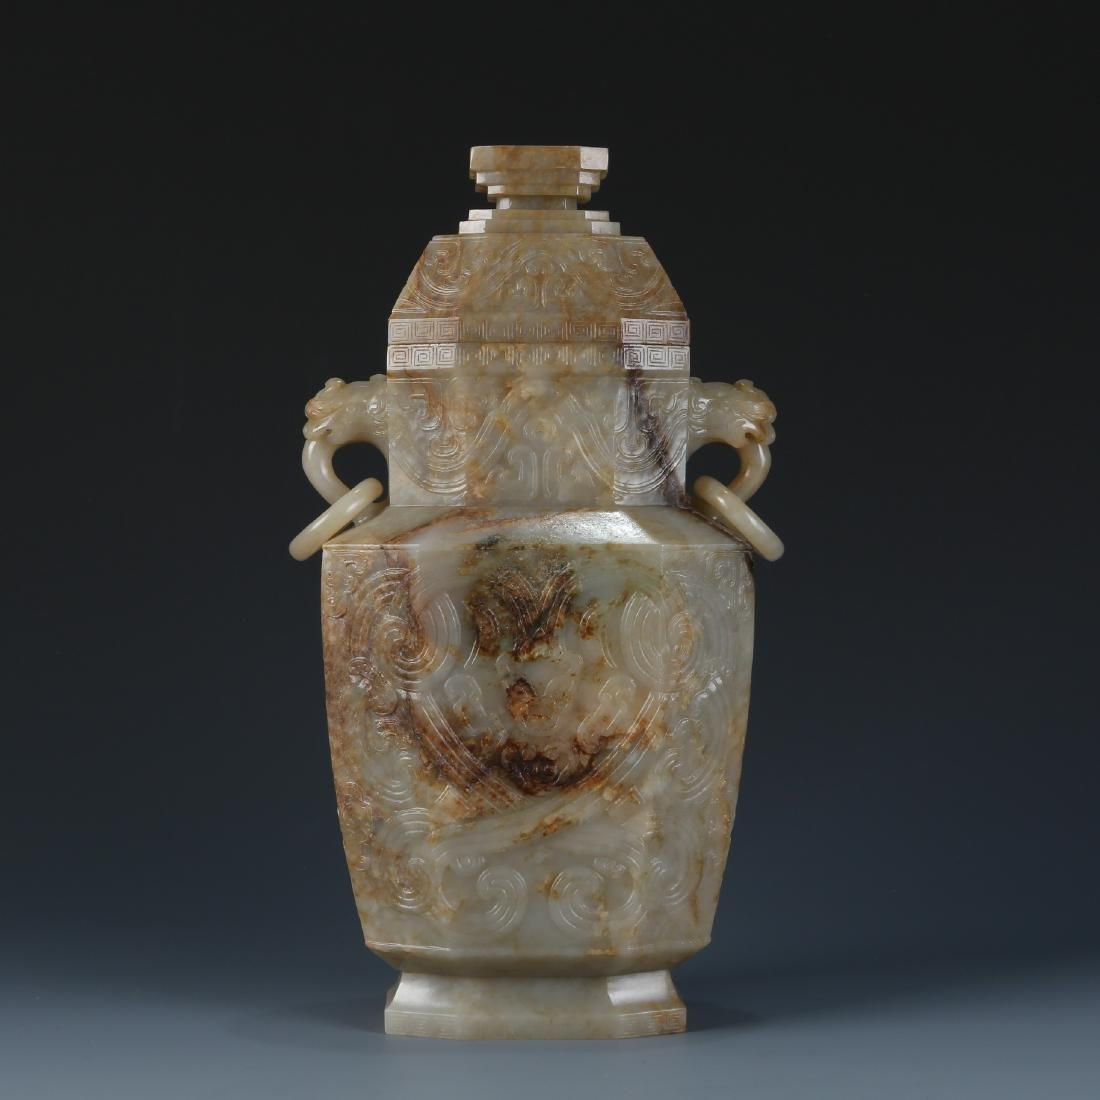 A Large Celadon Jade Archaistic Vase and Cover